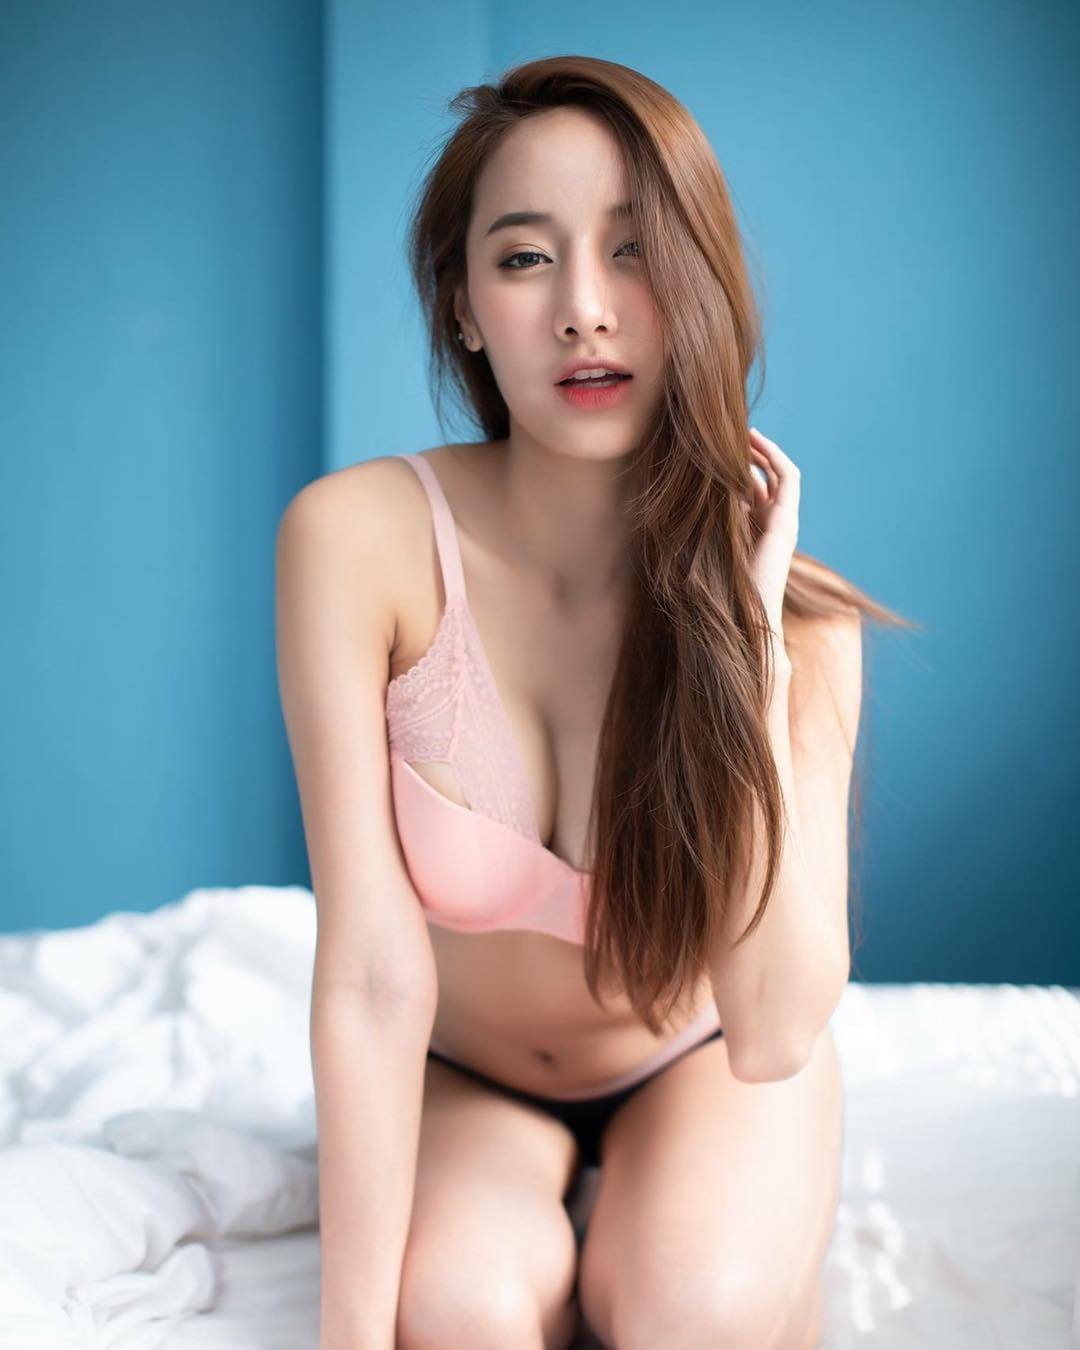 tai khoan instagram hot girl thai lan - Pichana Yoosuk - elle man 1